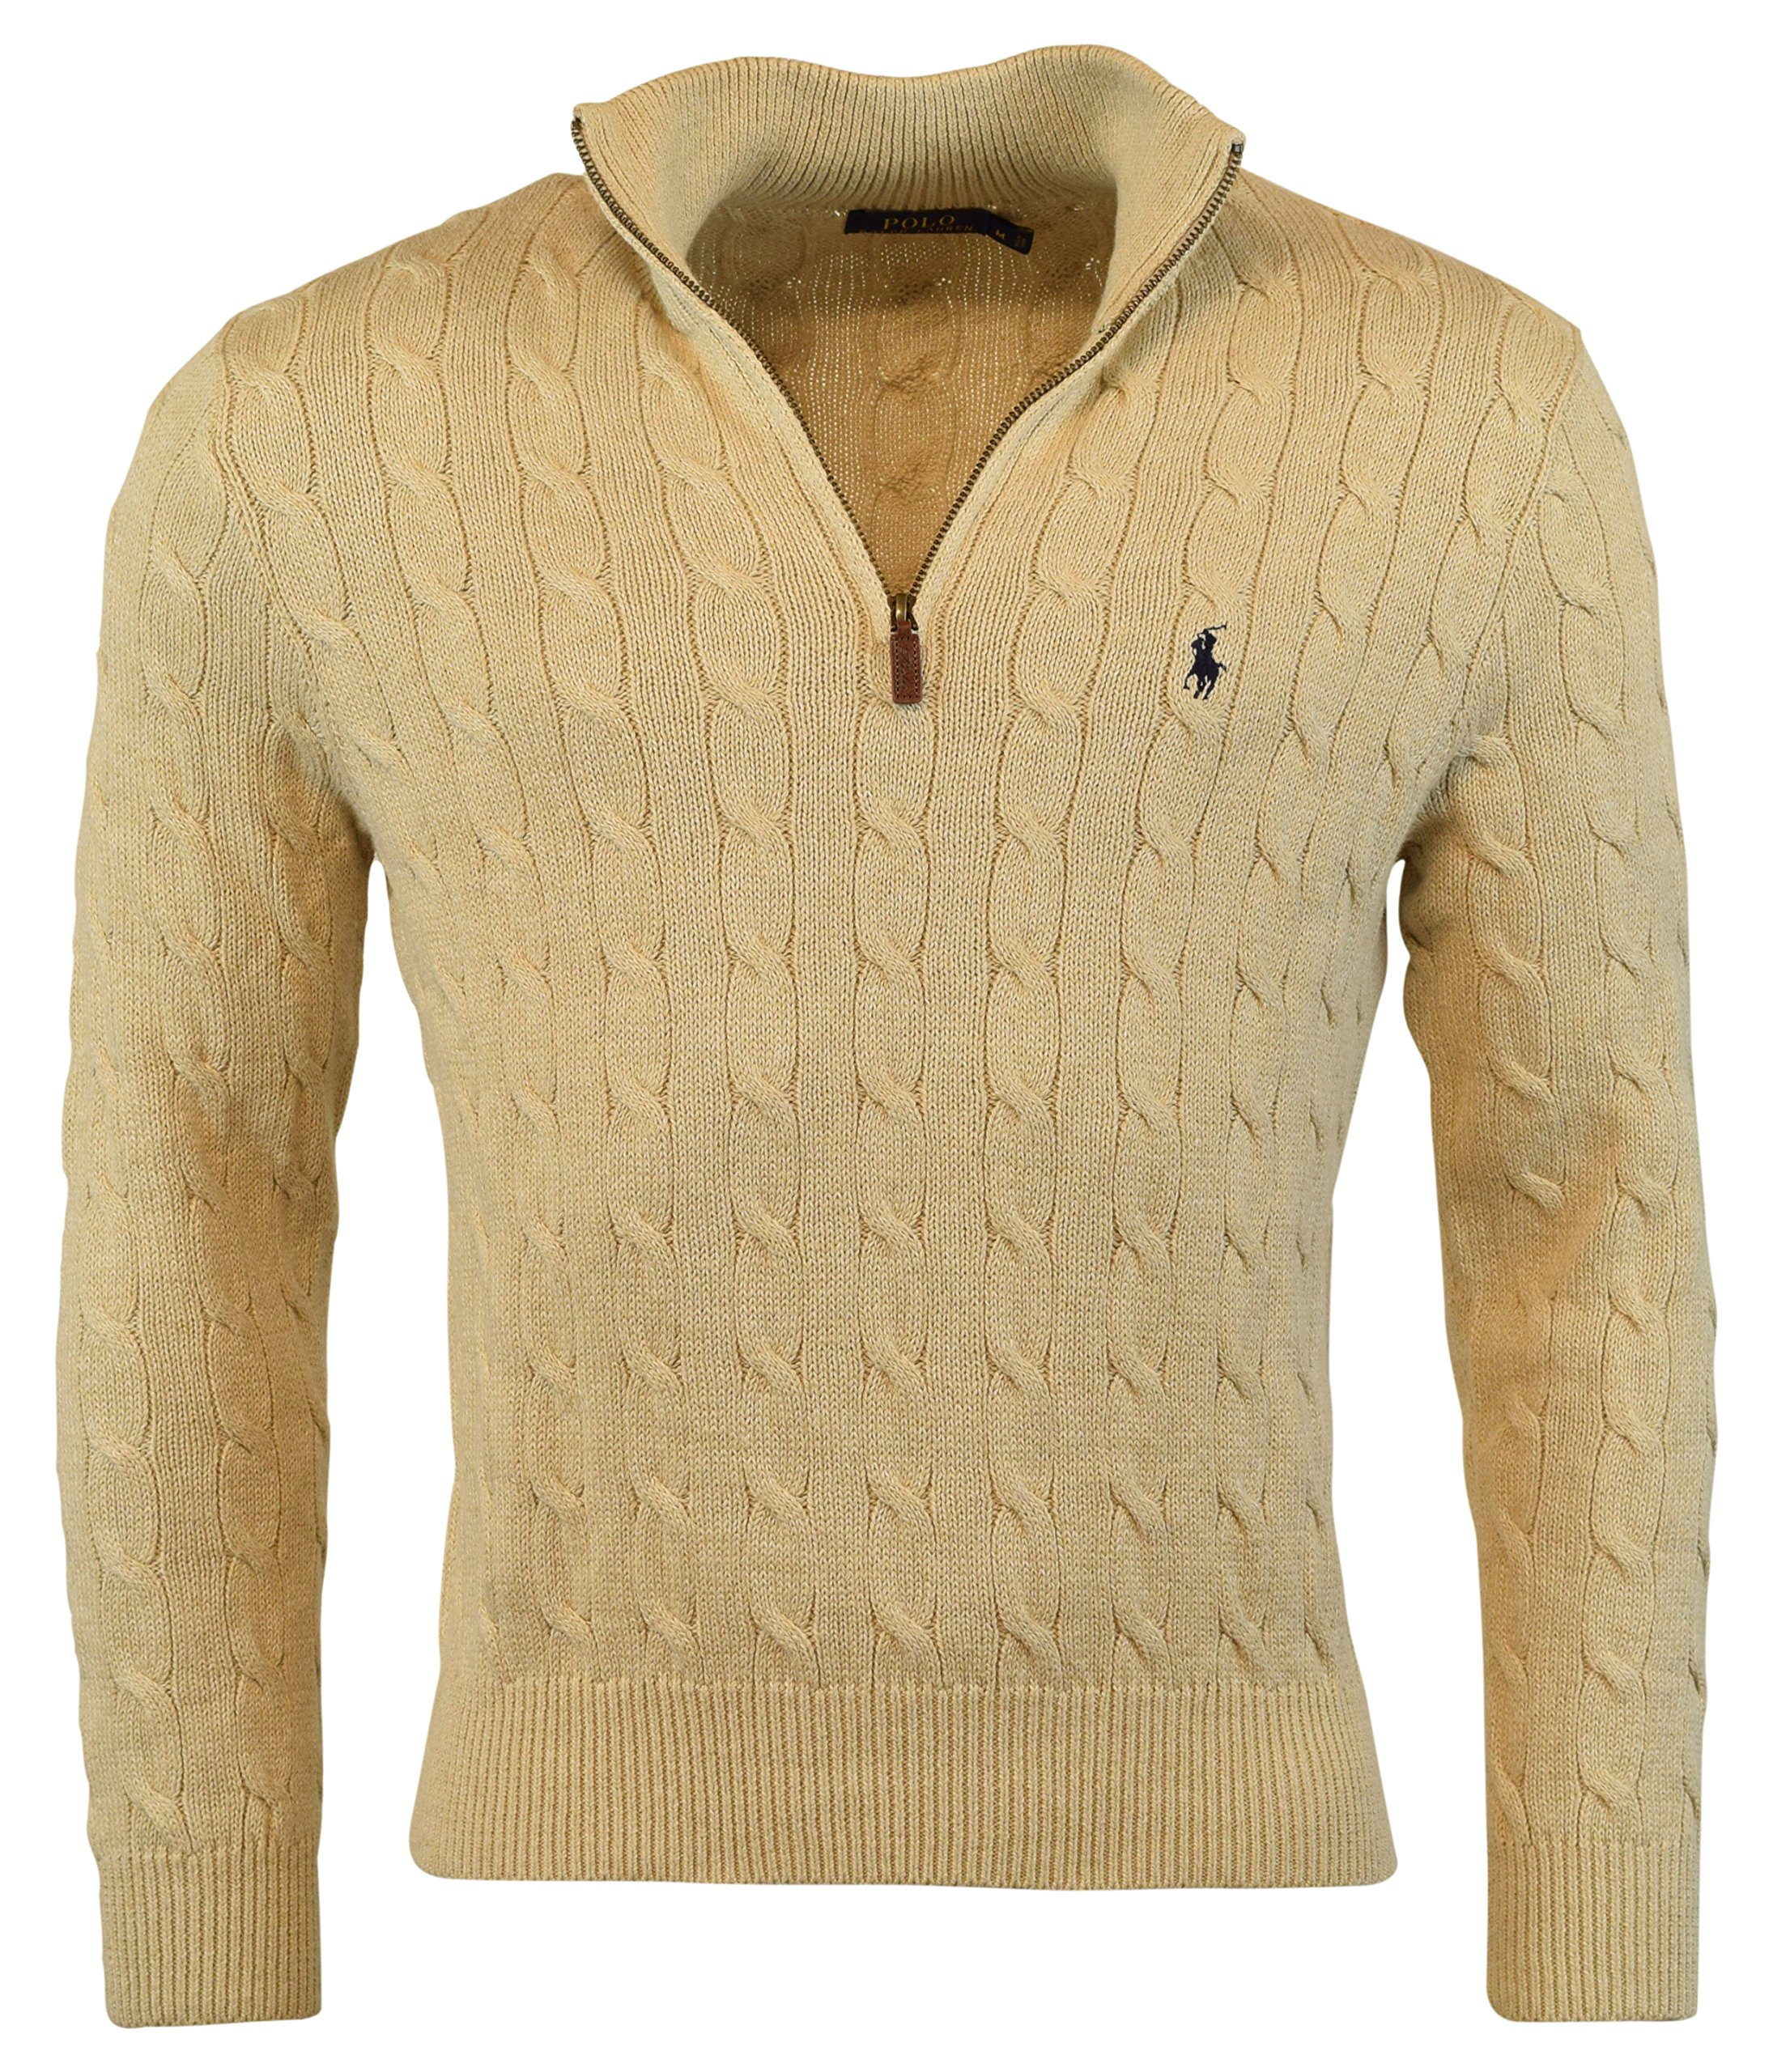 Polo Ralph Lauren Men's Cable-Knit Mock Neck Sweater, M, Oatmeal Heather by Polo Ralph Lauren